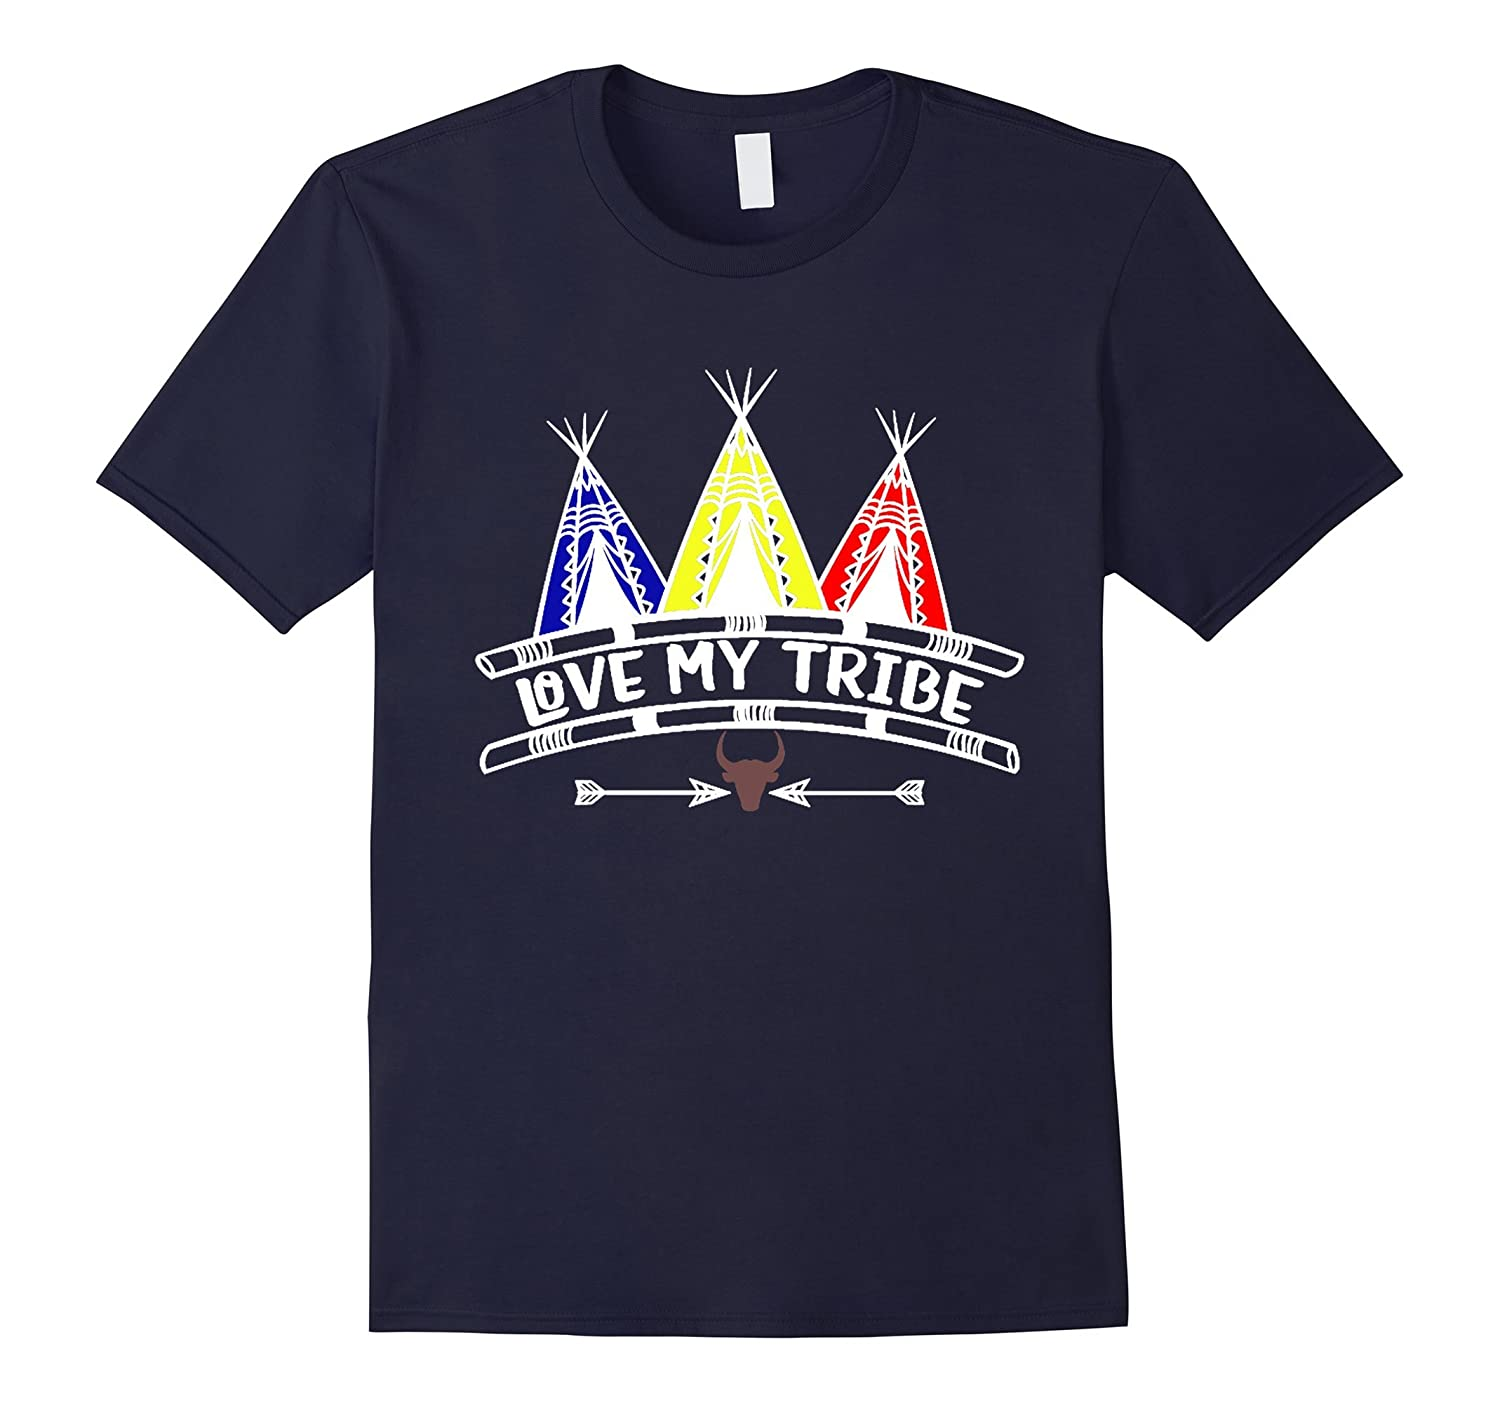 Love My Tribe Shirt Family Teepee Tipi Tribal Boho Mom-Vaci